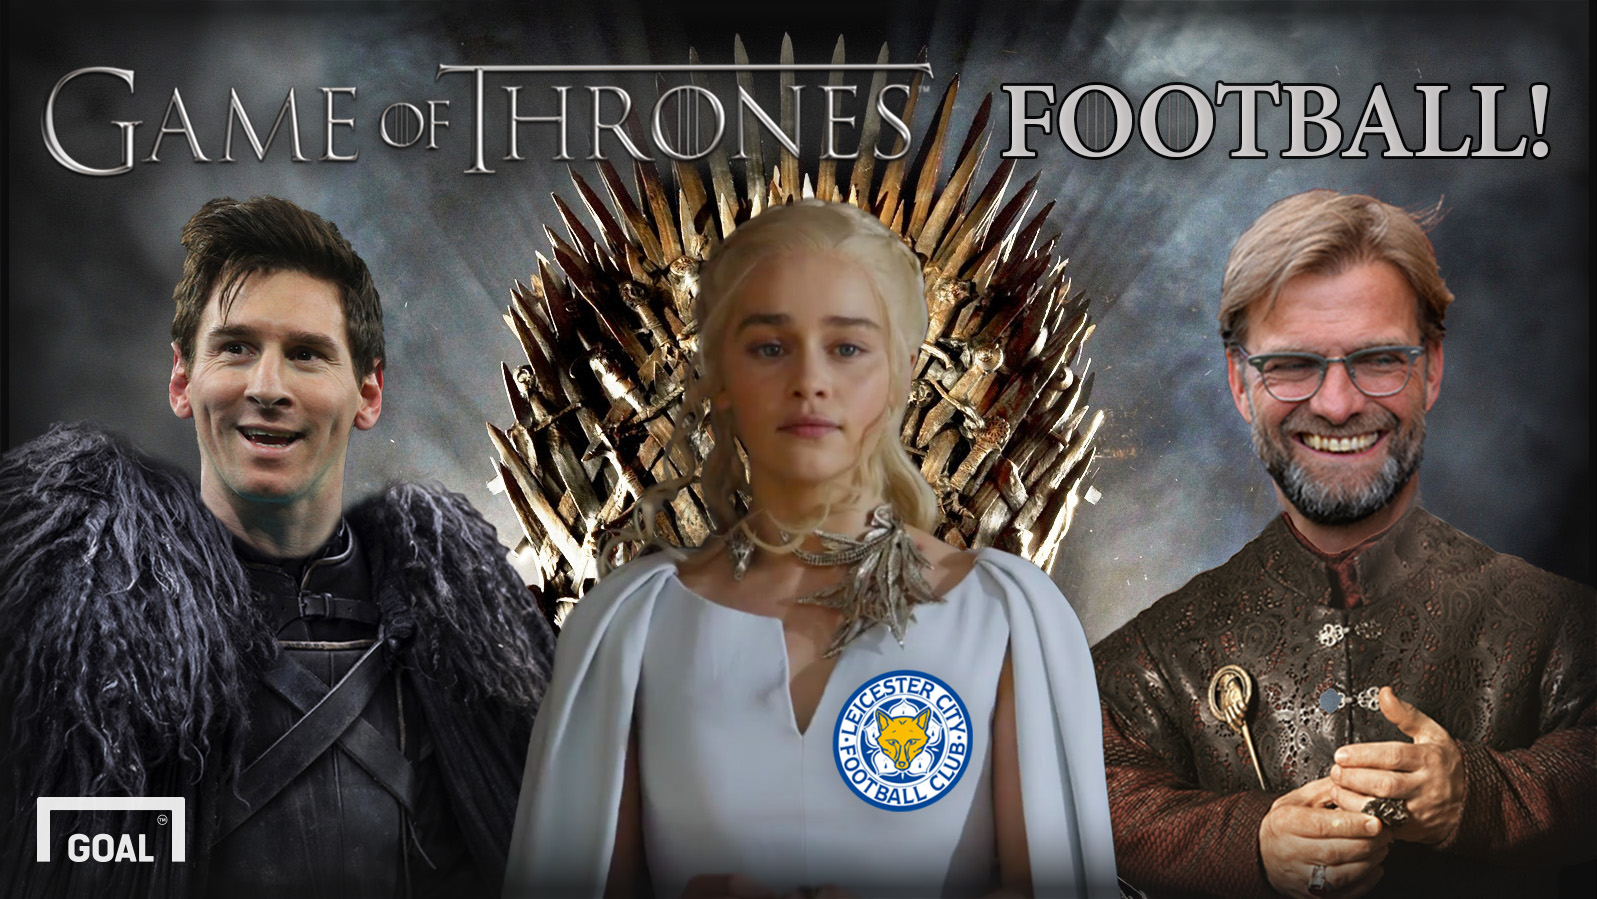 Team Littlefinger Home: If Football Were Game Of Thrones